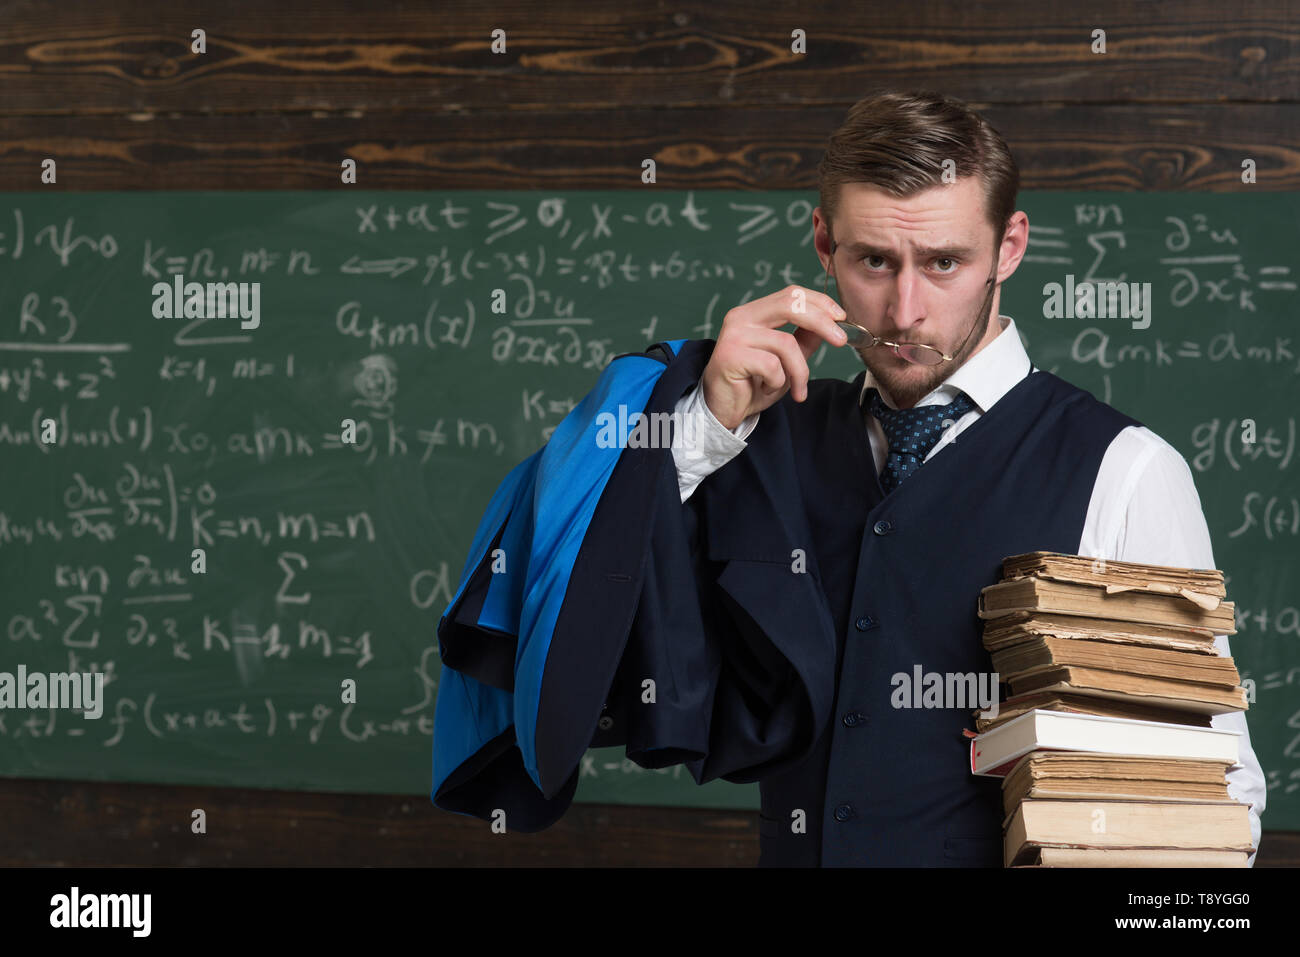 Are you serious Teacher formal wear and glasses looks suspicious, chalkboard background. Chalkboard full of math formulas. Man in end of lesson - Stock Image